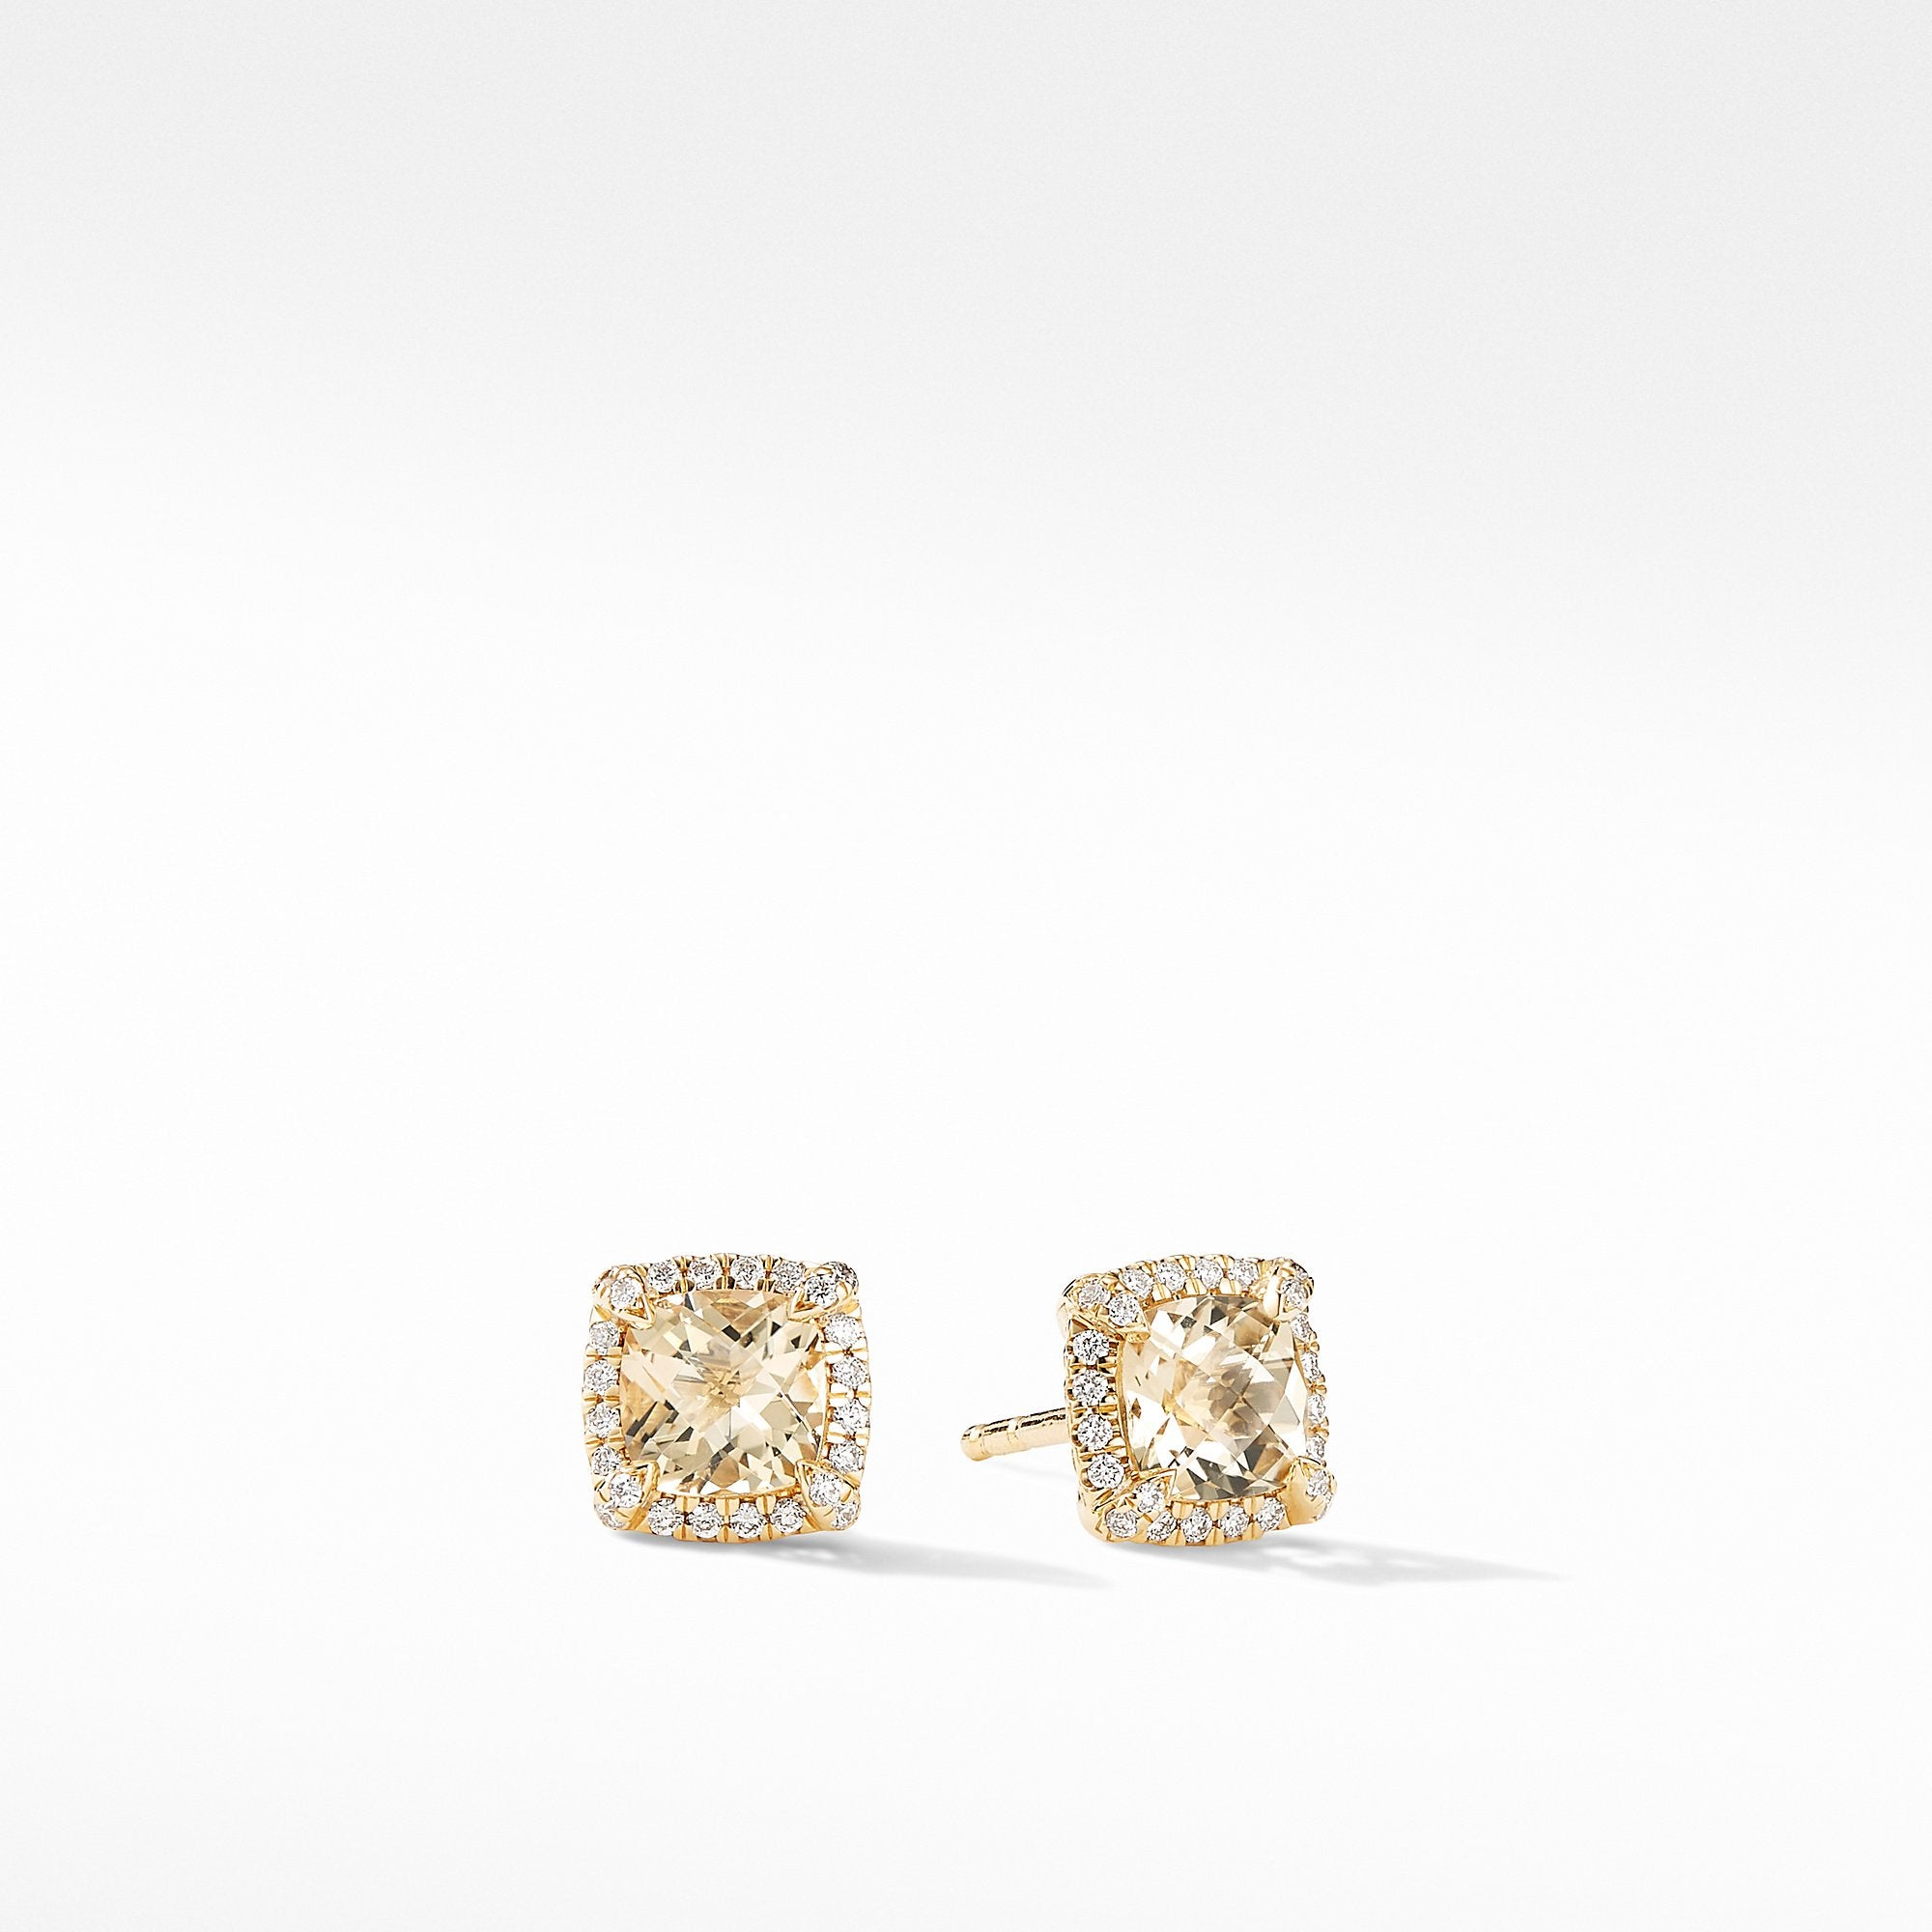 Petite Chatelaine® Pavé Bezel Stud Earrings in 18K Yellow Gold with Champagne Citrine